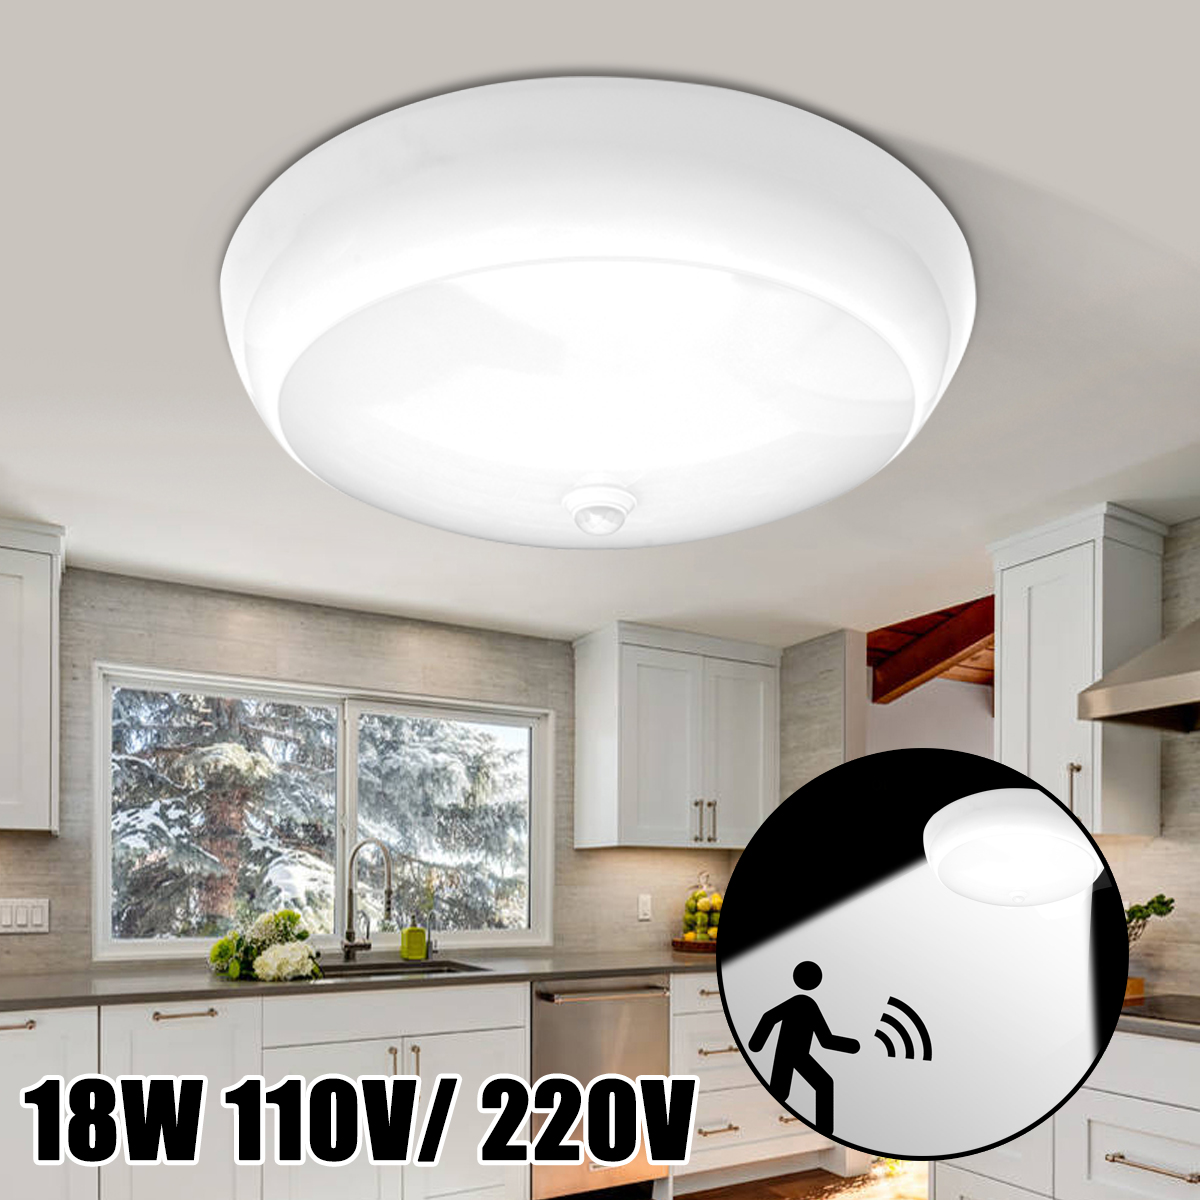 18W PIR Motion Sensor LED Ceiling Lights Modern Flush Mount Ceiling     18W PIR Motion Sensor LED Ceiling Lights Modern Flush Mount Ceiling Lamp  Living Room Lighting Fixture